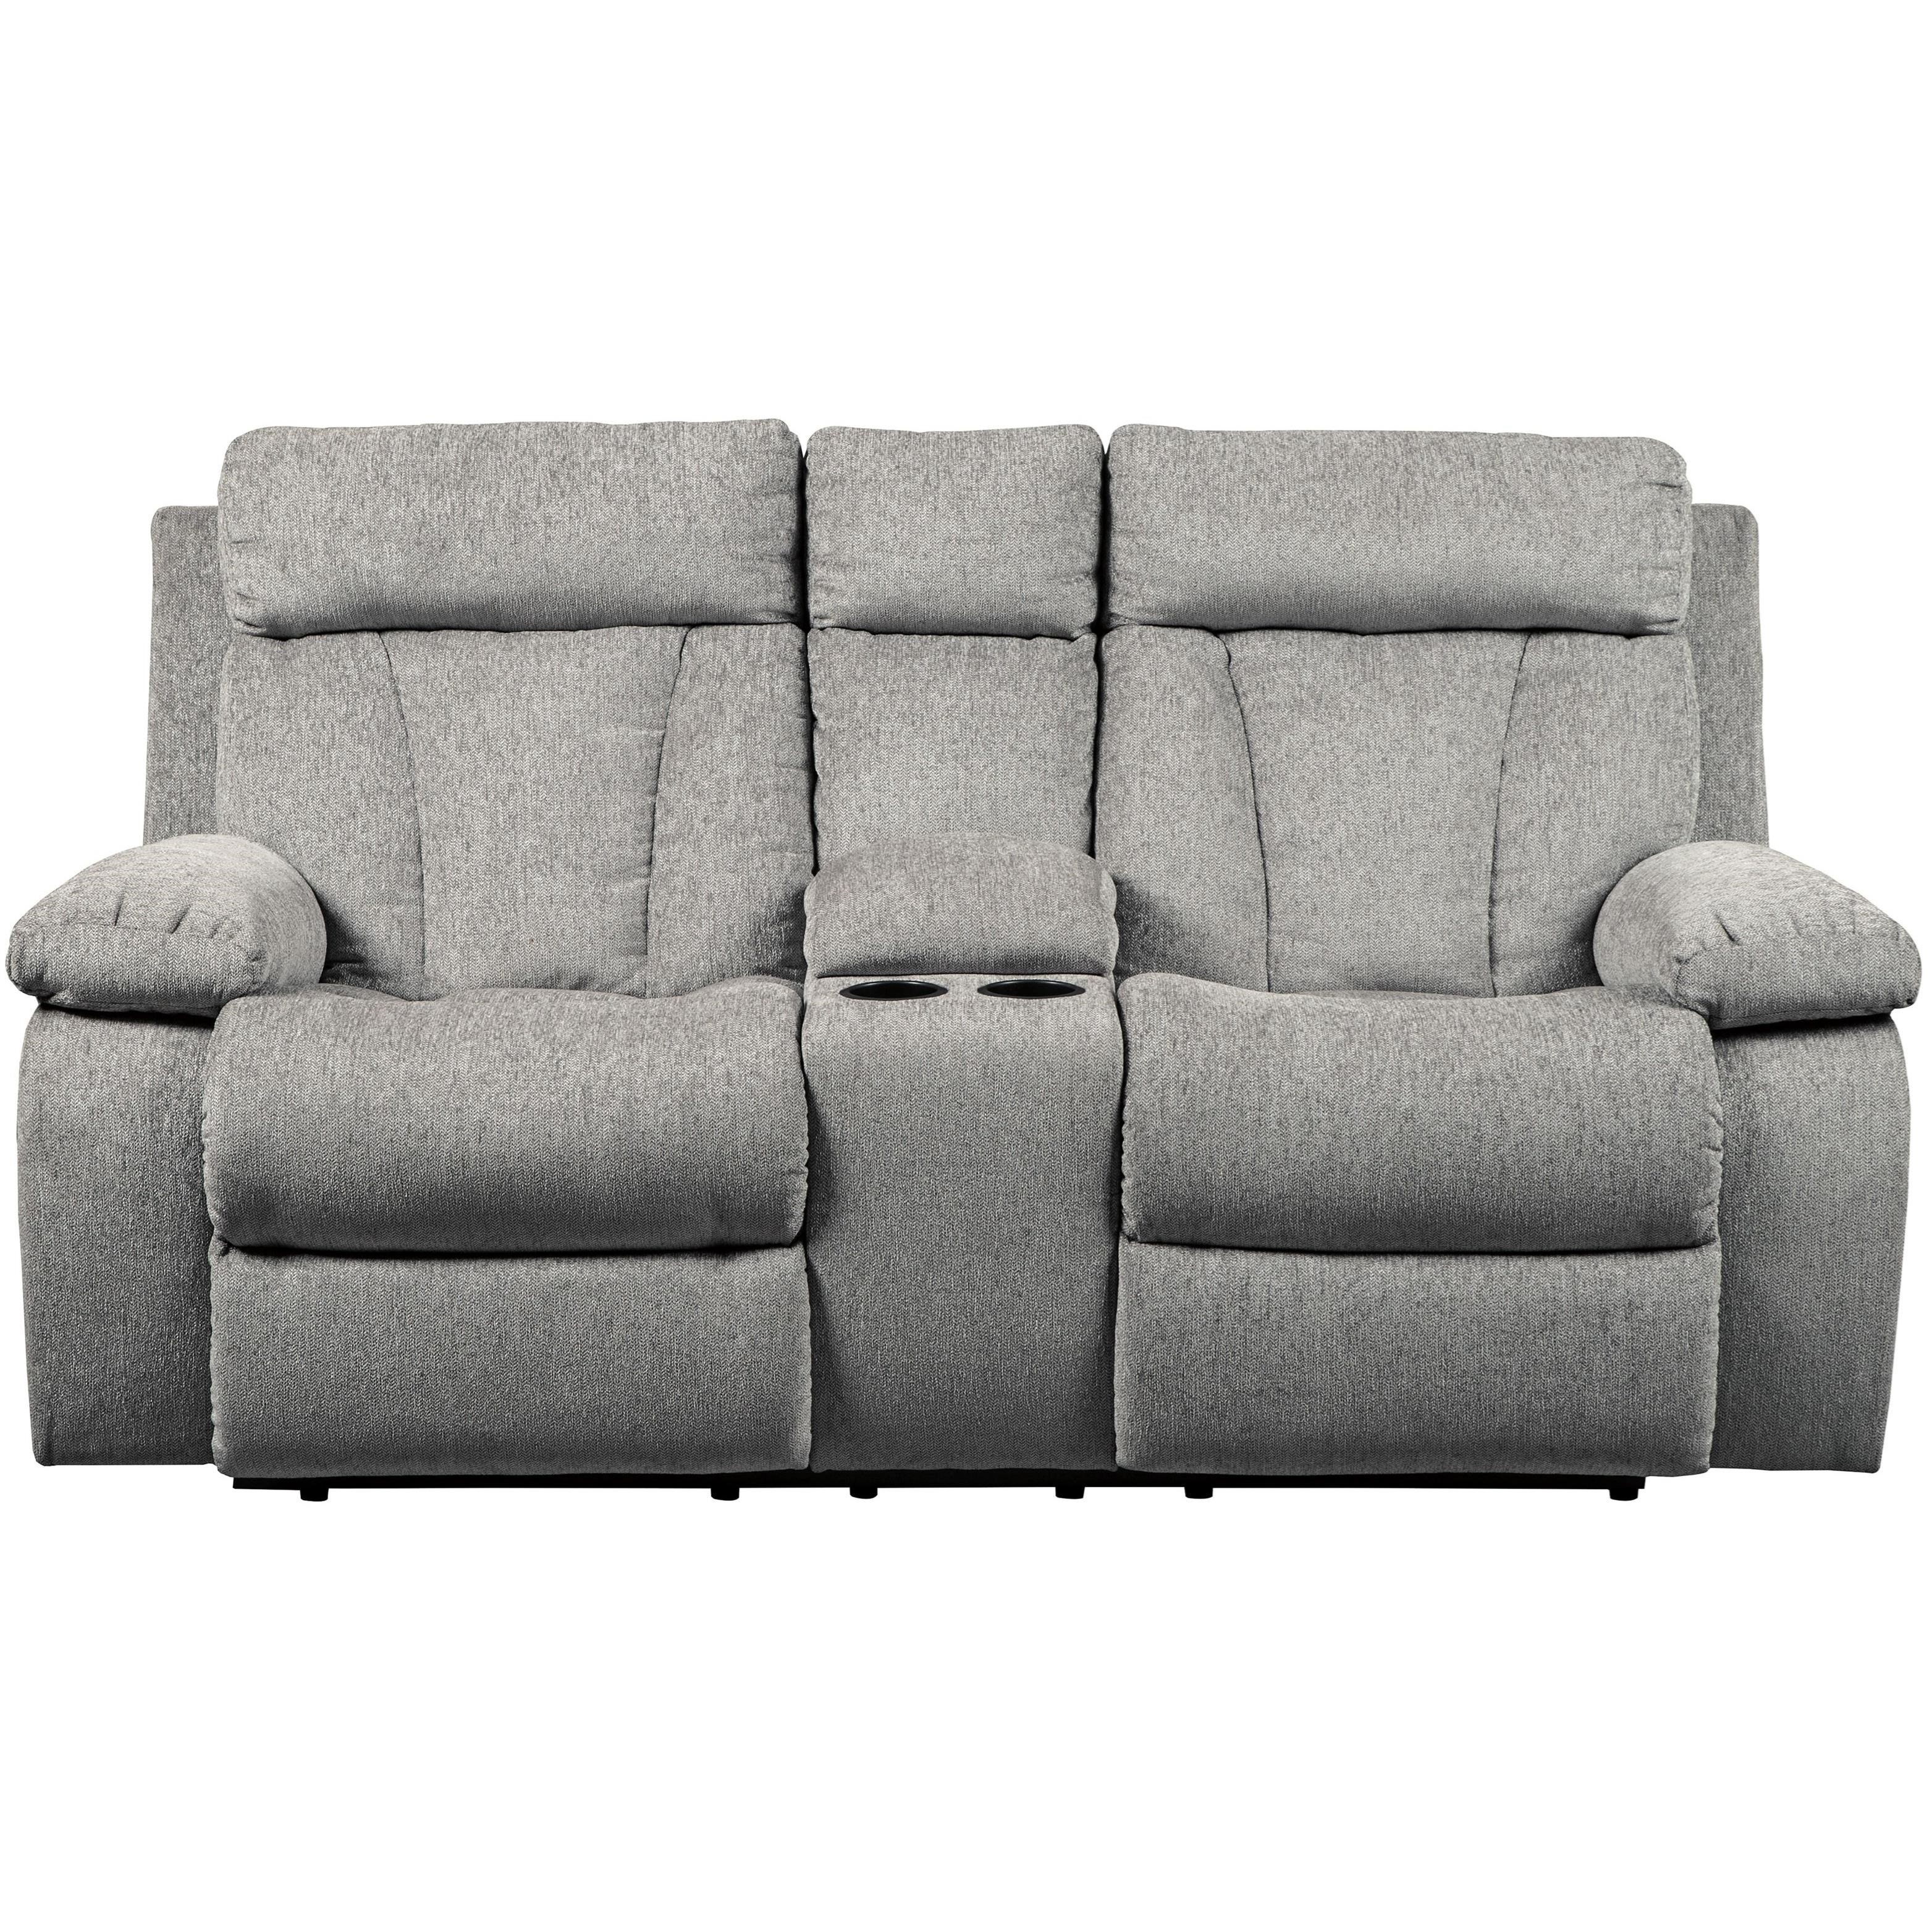 Middleton Double Reclining Love Seat by Signature at Walker's Furniture